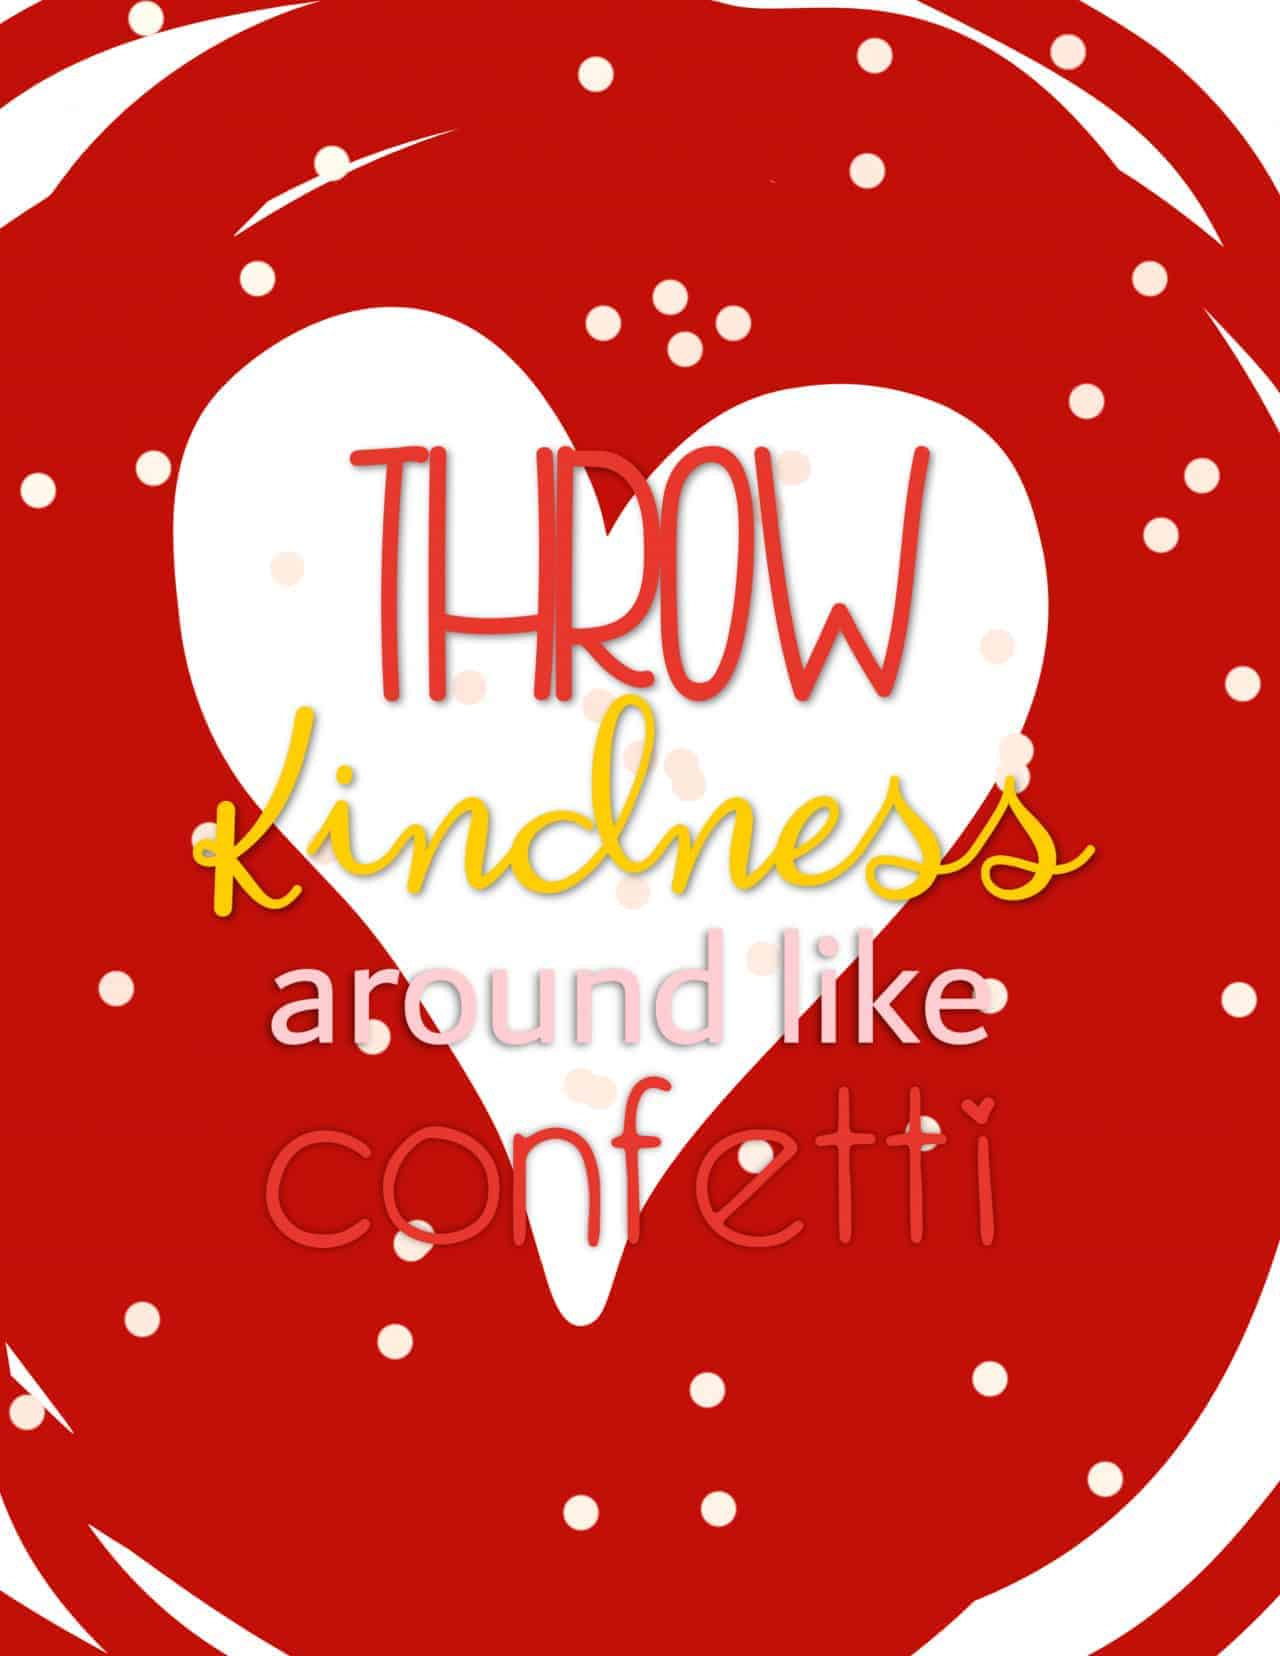 Throw Kindness Around Like Confetti - with red heart shaped background and pinkish confetti